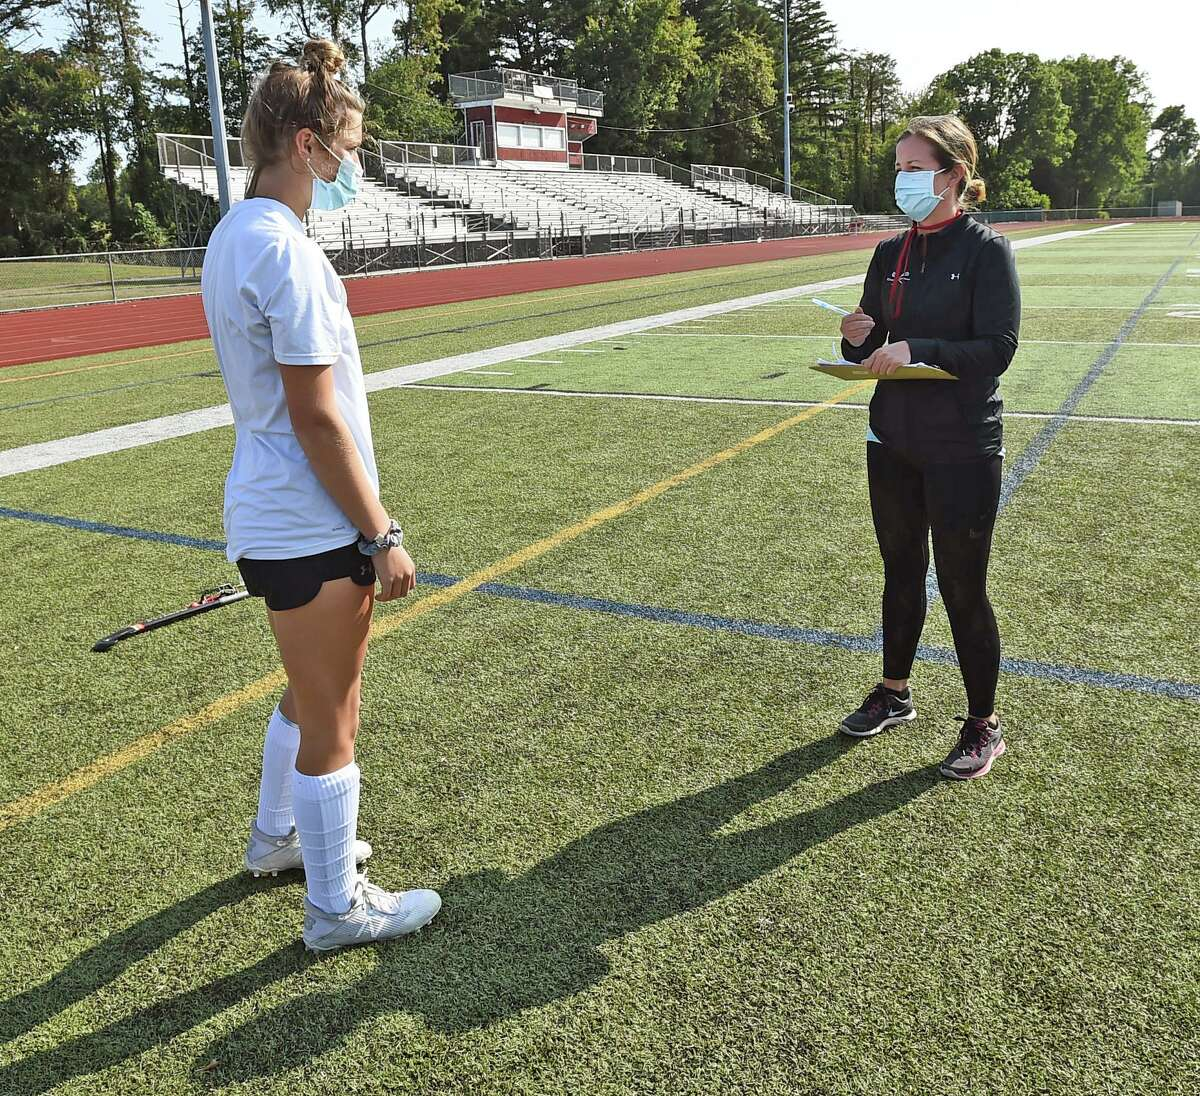 Cheshire field hockey coach Eileen Wildermann, right, is stepping down after 13 seasons with the Rams.